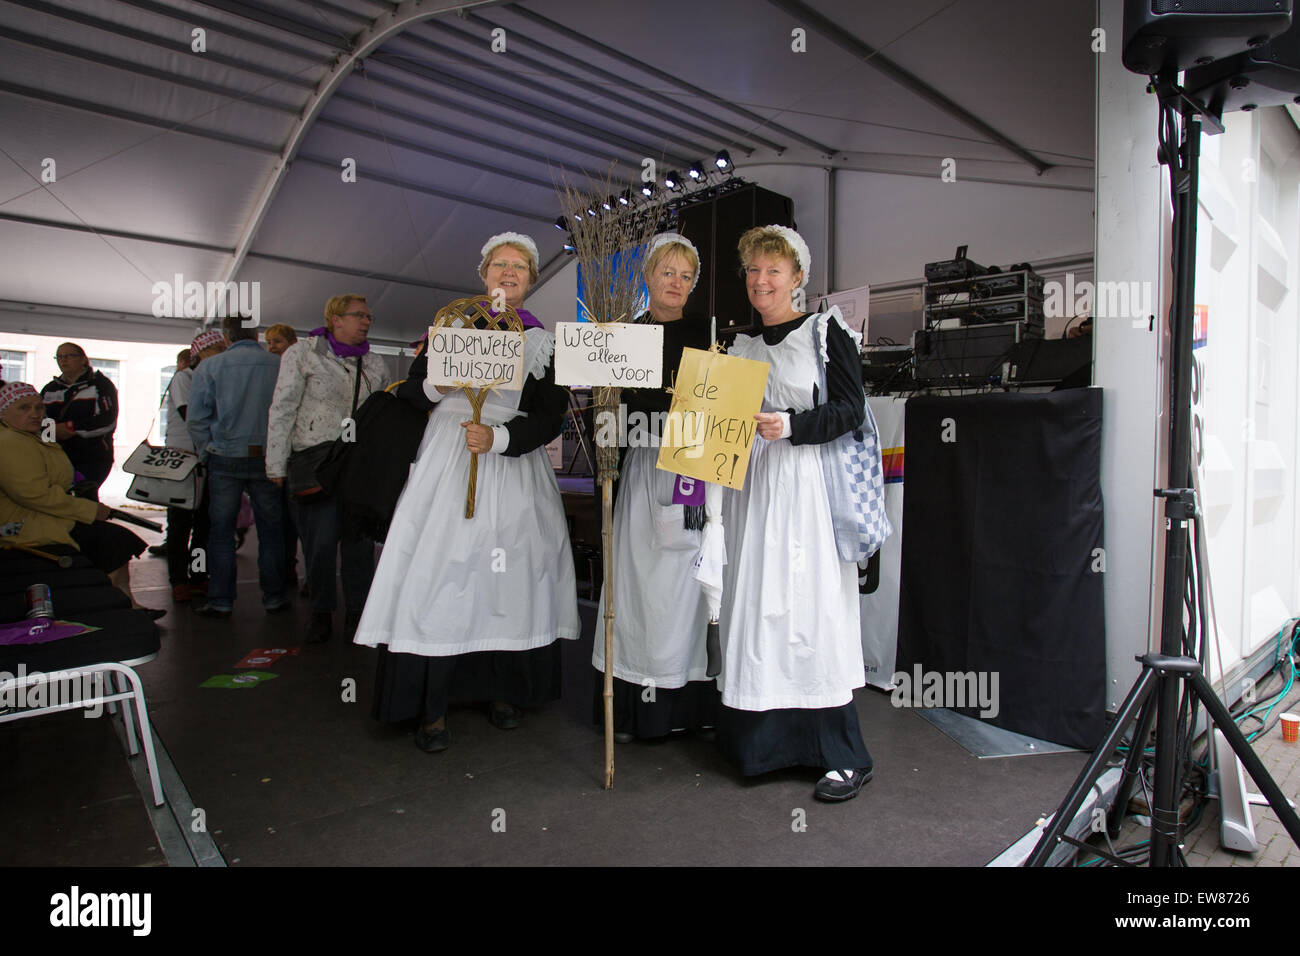 The Hague, Netherlands. 19th June, 2015. On Friday several hundred people gathered near parliament to hand over Stock Photo